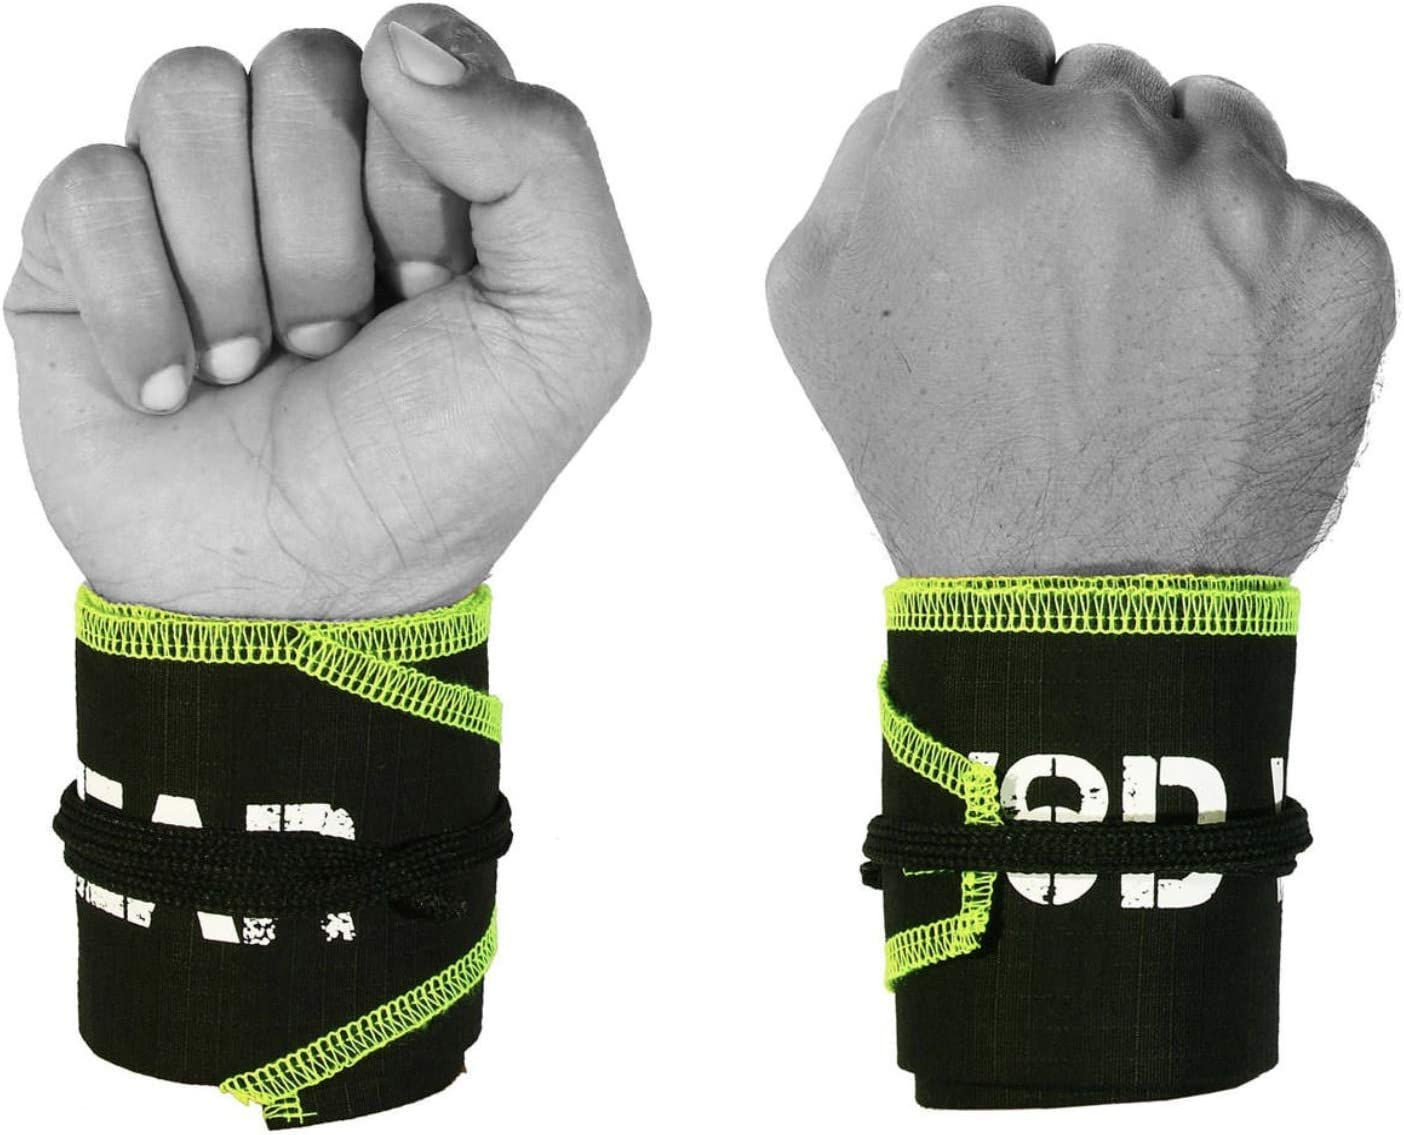 best wrist wraps for weight lifting